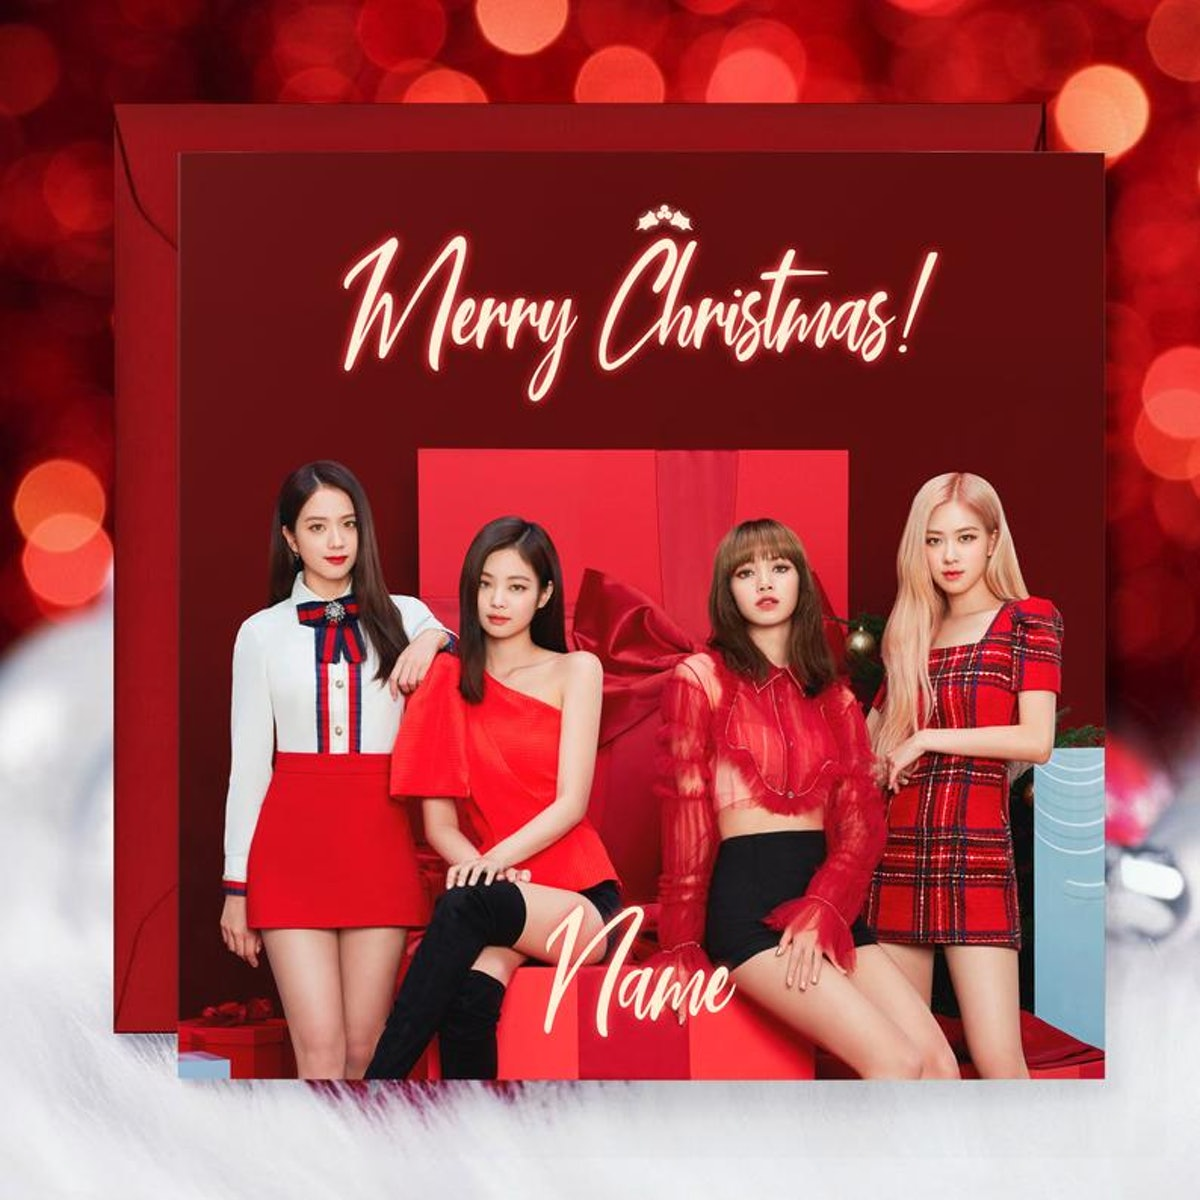 Blackpink Christmas Card Personalized, Rosé, Lisa, Jennie, Jisoo, Kpop, Kpop Christmas, Kpop Christmas Cards, Blackpink Christmas